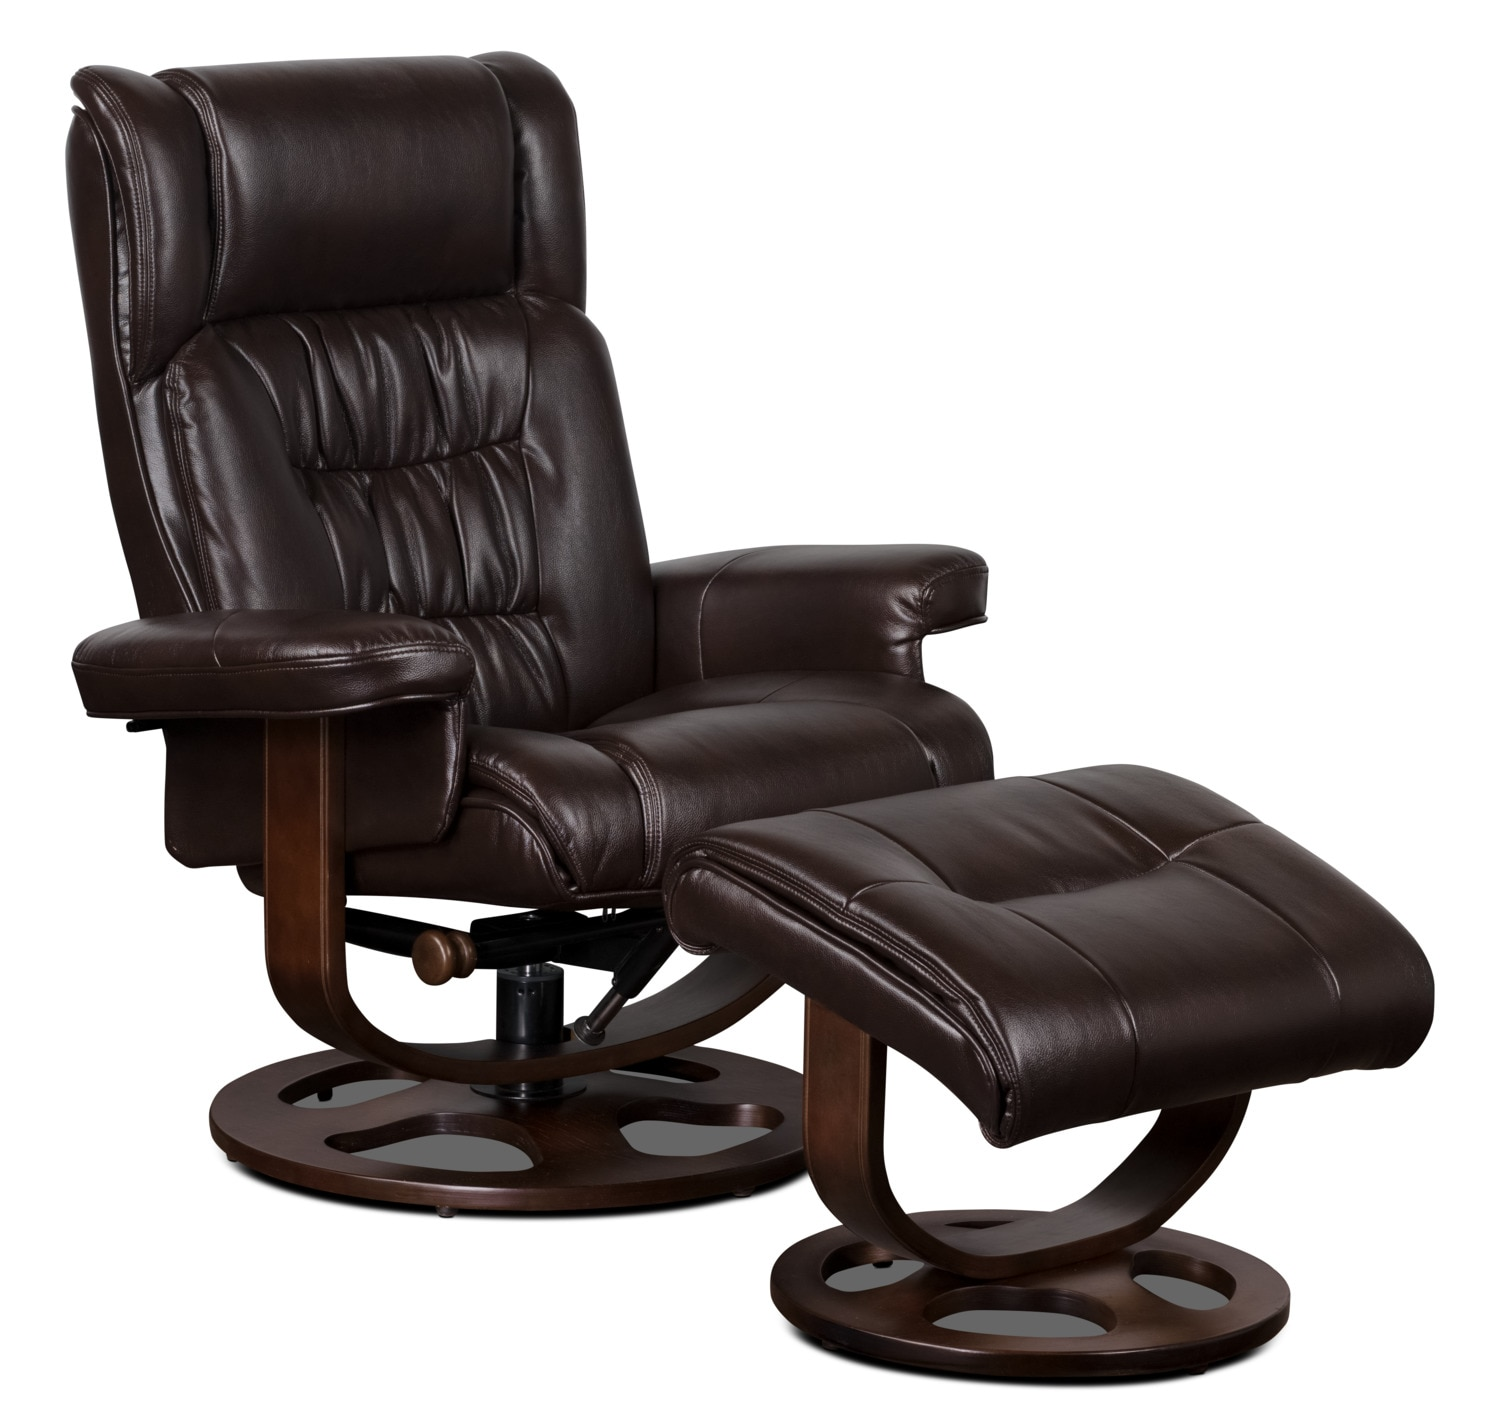 Benji Leather-Look Fabric Swivel Reclining Chair with ...